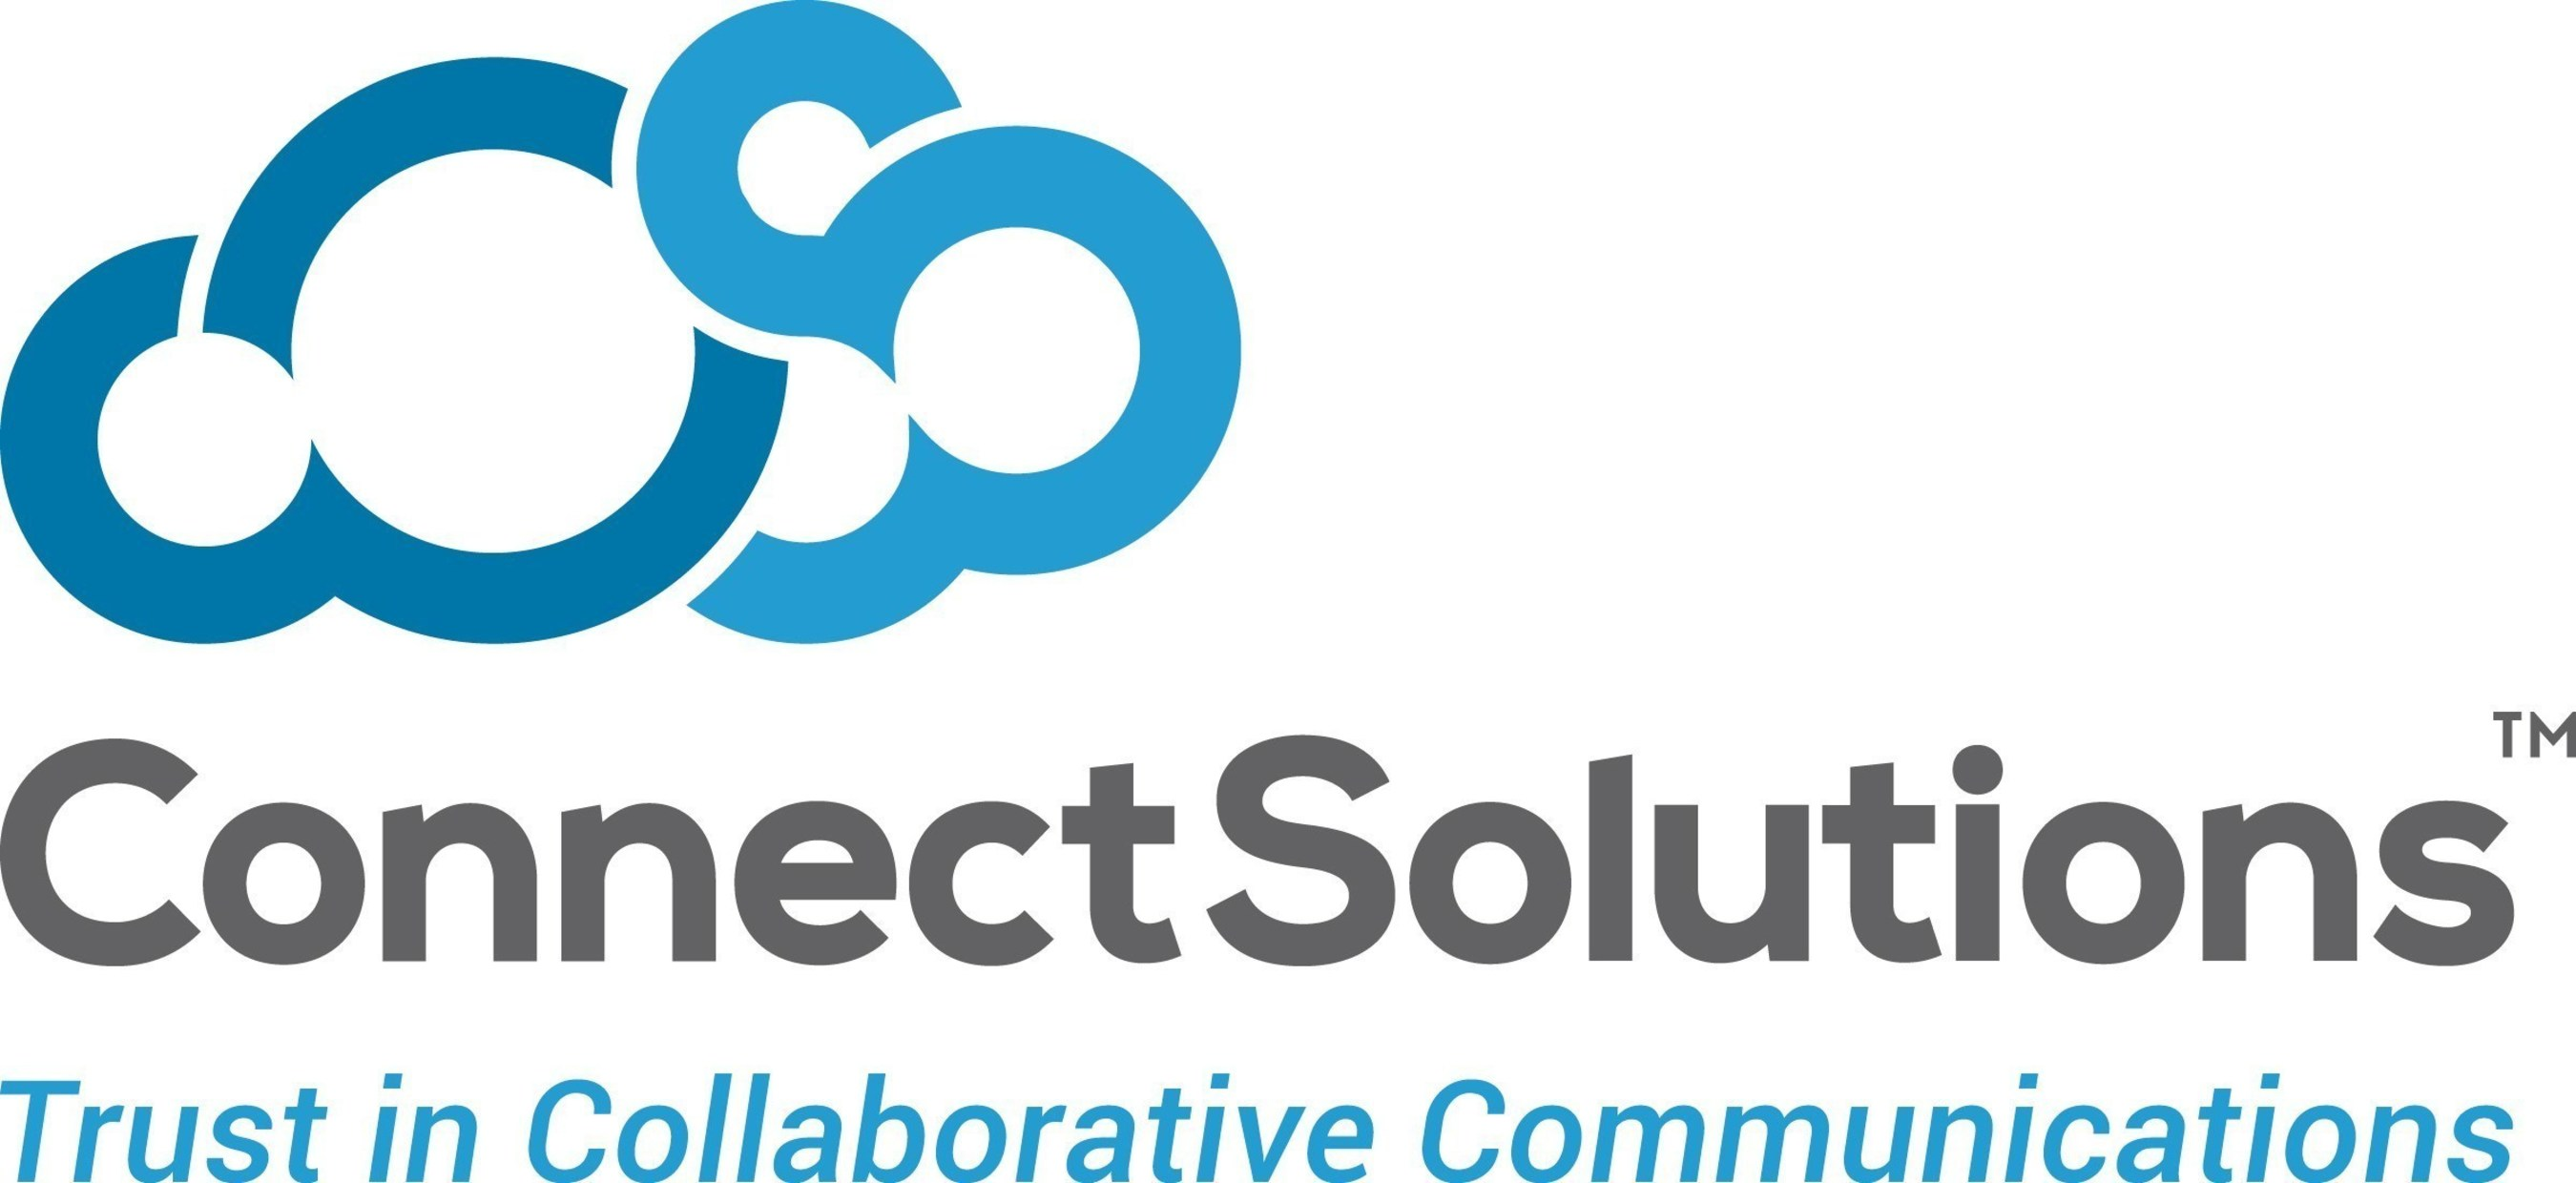 ConnectSolutions Webinar: How the Evolving eLearning Landscape is Creating New Opportunities for